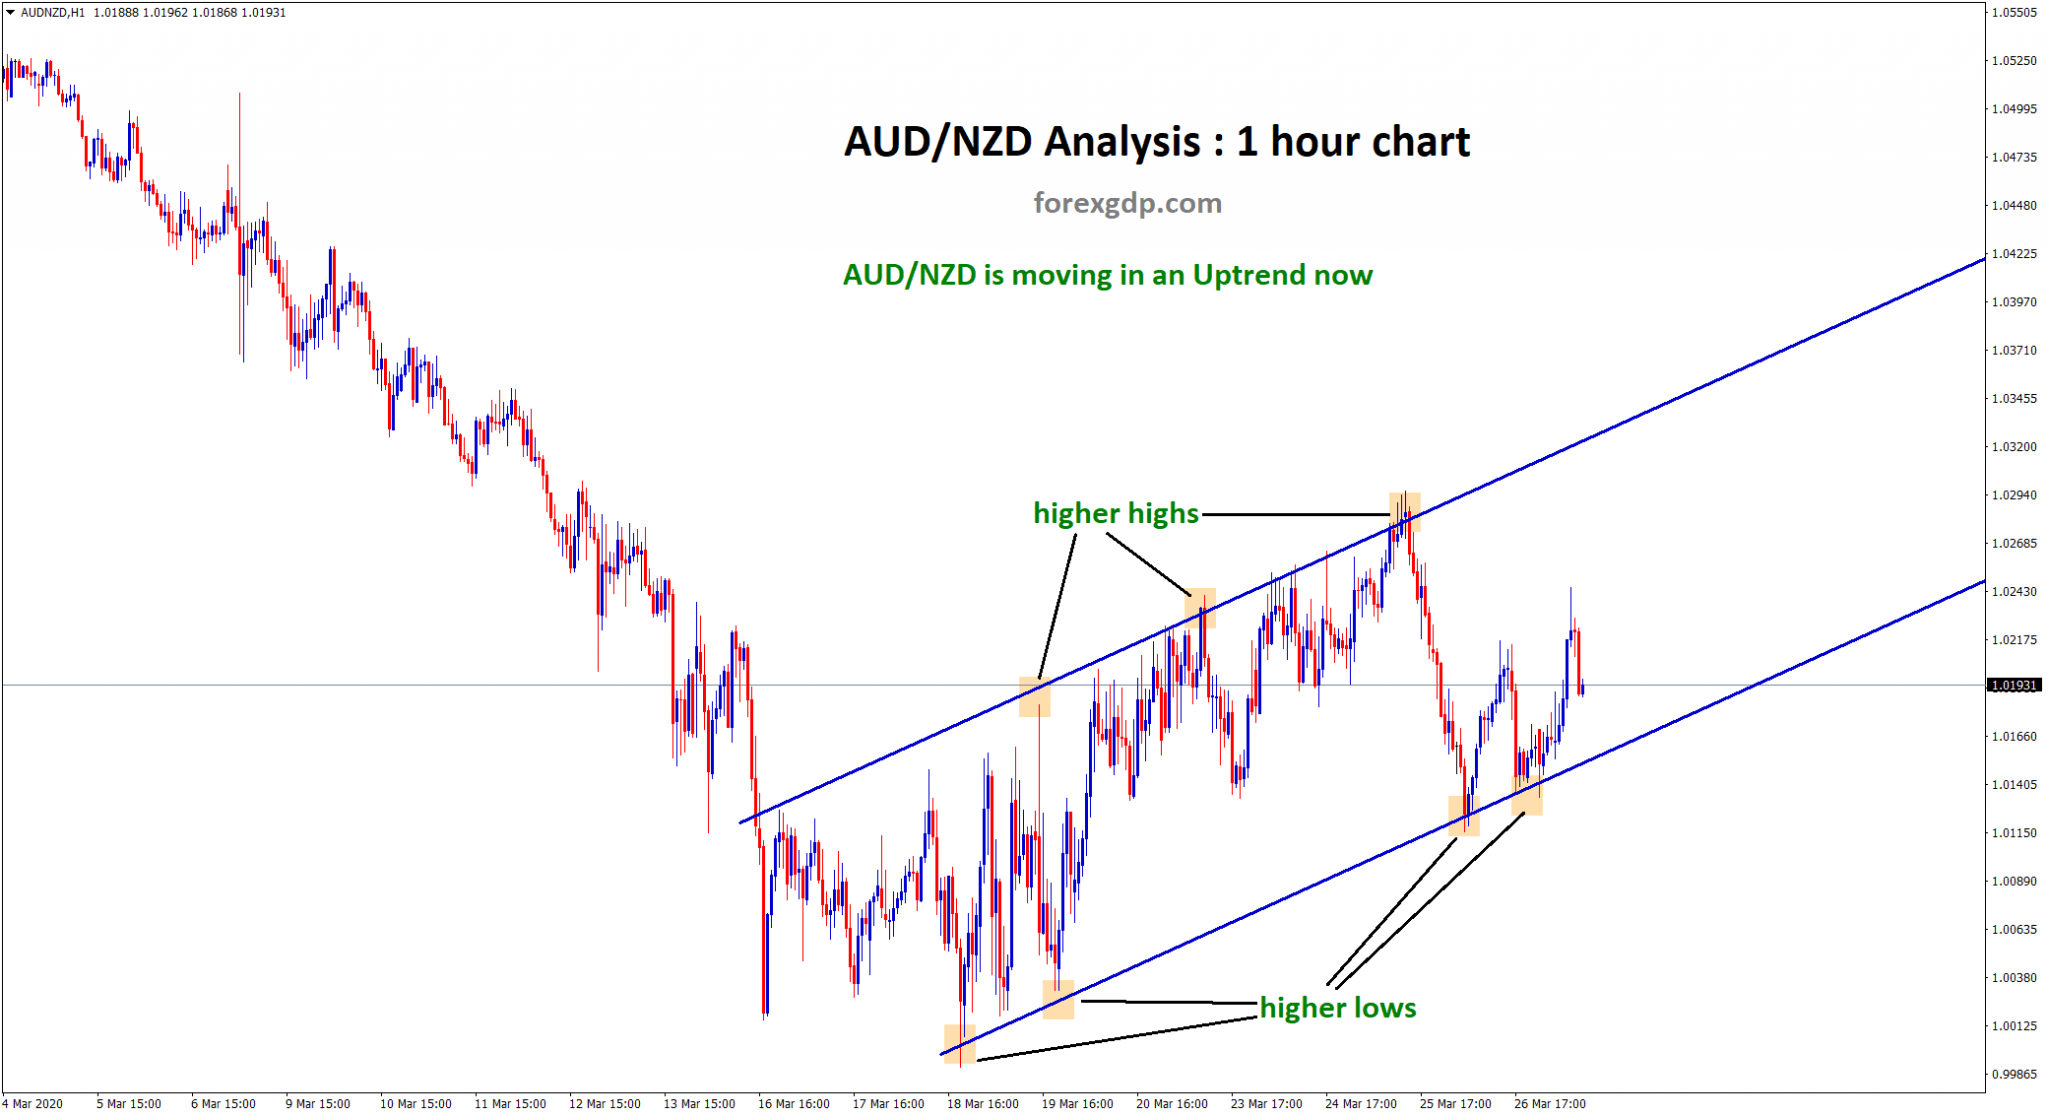 Up trend ascending channel in aud nzd